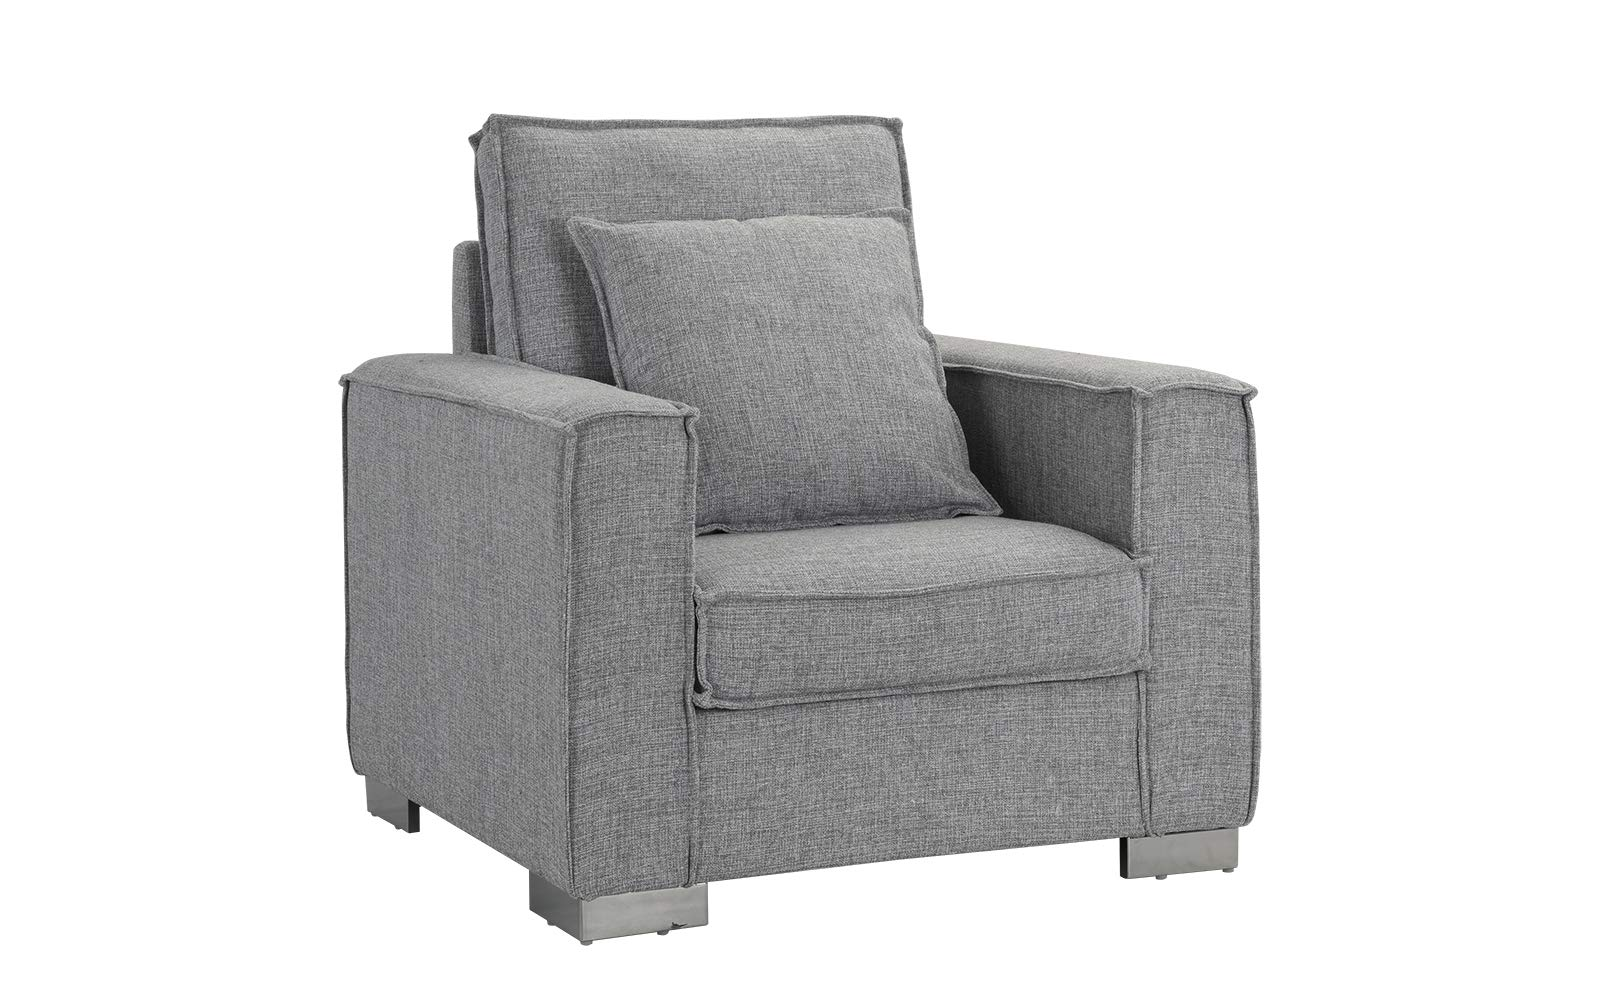 Living Room Large Linen Fabric Armchair, Living Room Accent Chair (Light Grey) - Club style chair with plenty of room for ultimate comfort and includes additional pillow. Upholstered in soft linen fabric with an exposed edge trim around frame and cushions. Low profile with a square shape and wide track arm rests, and features chrome L shape legs. - living-room-furniture, living-room, accent-chairs - 71eR%2BWXVhqL -